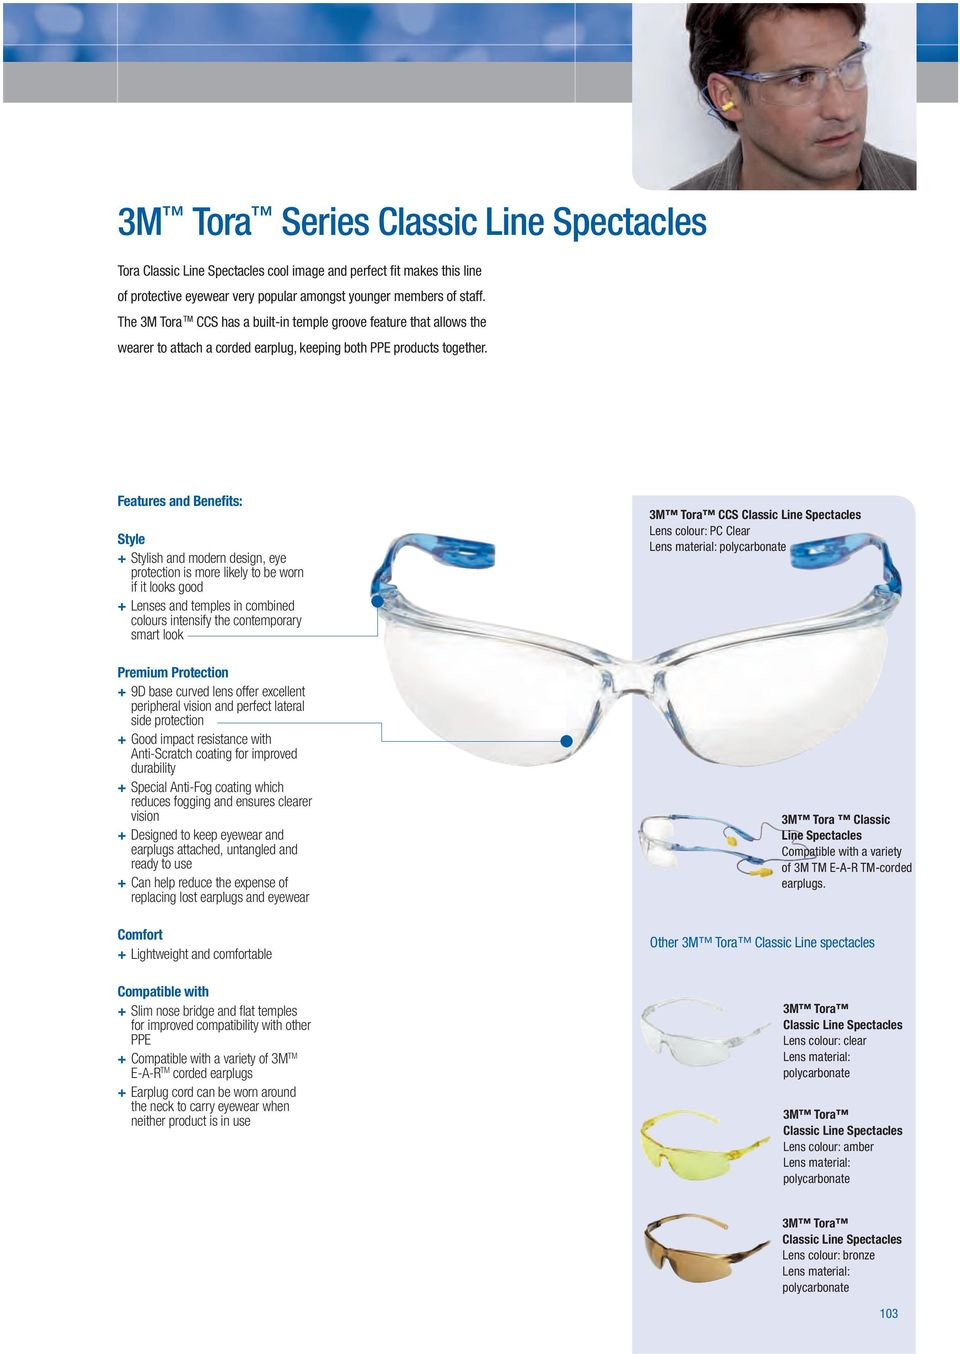 + Stylish and modern design, eye protection is more likely to be worn 3M Tora CCS Classic Line Spectacles Lens colour: PC Clear if it looks good + Lenses and temples in combined colours intensify the